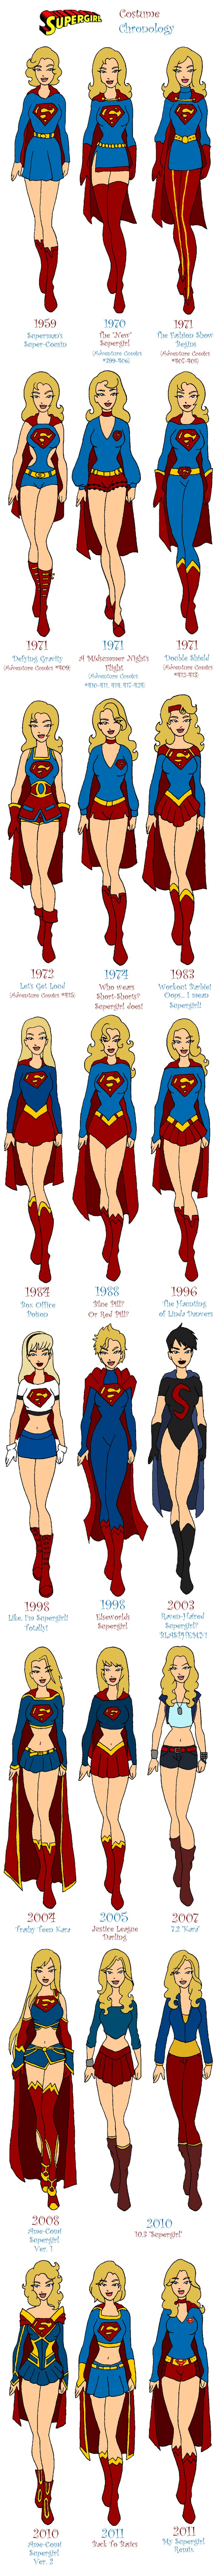 Supergirl Costume Chronology by *Femmes-Fatales on deviantART my babe